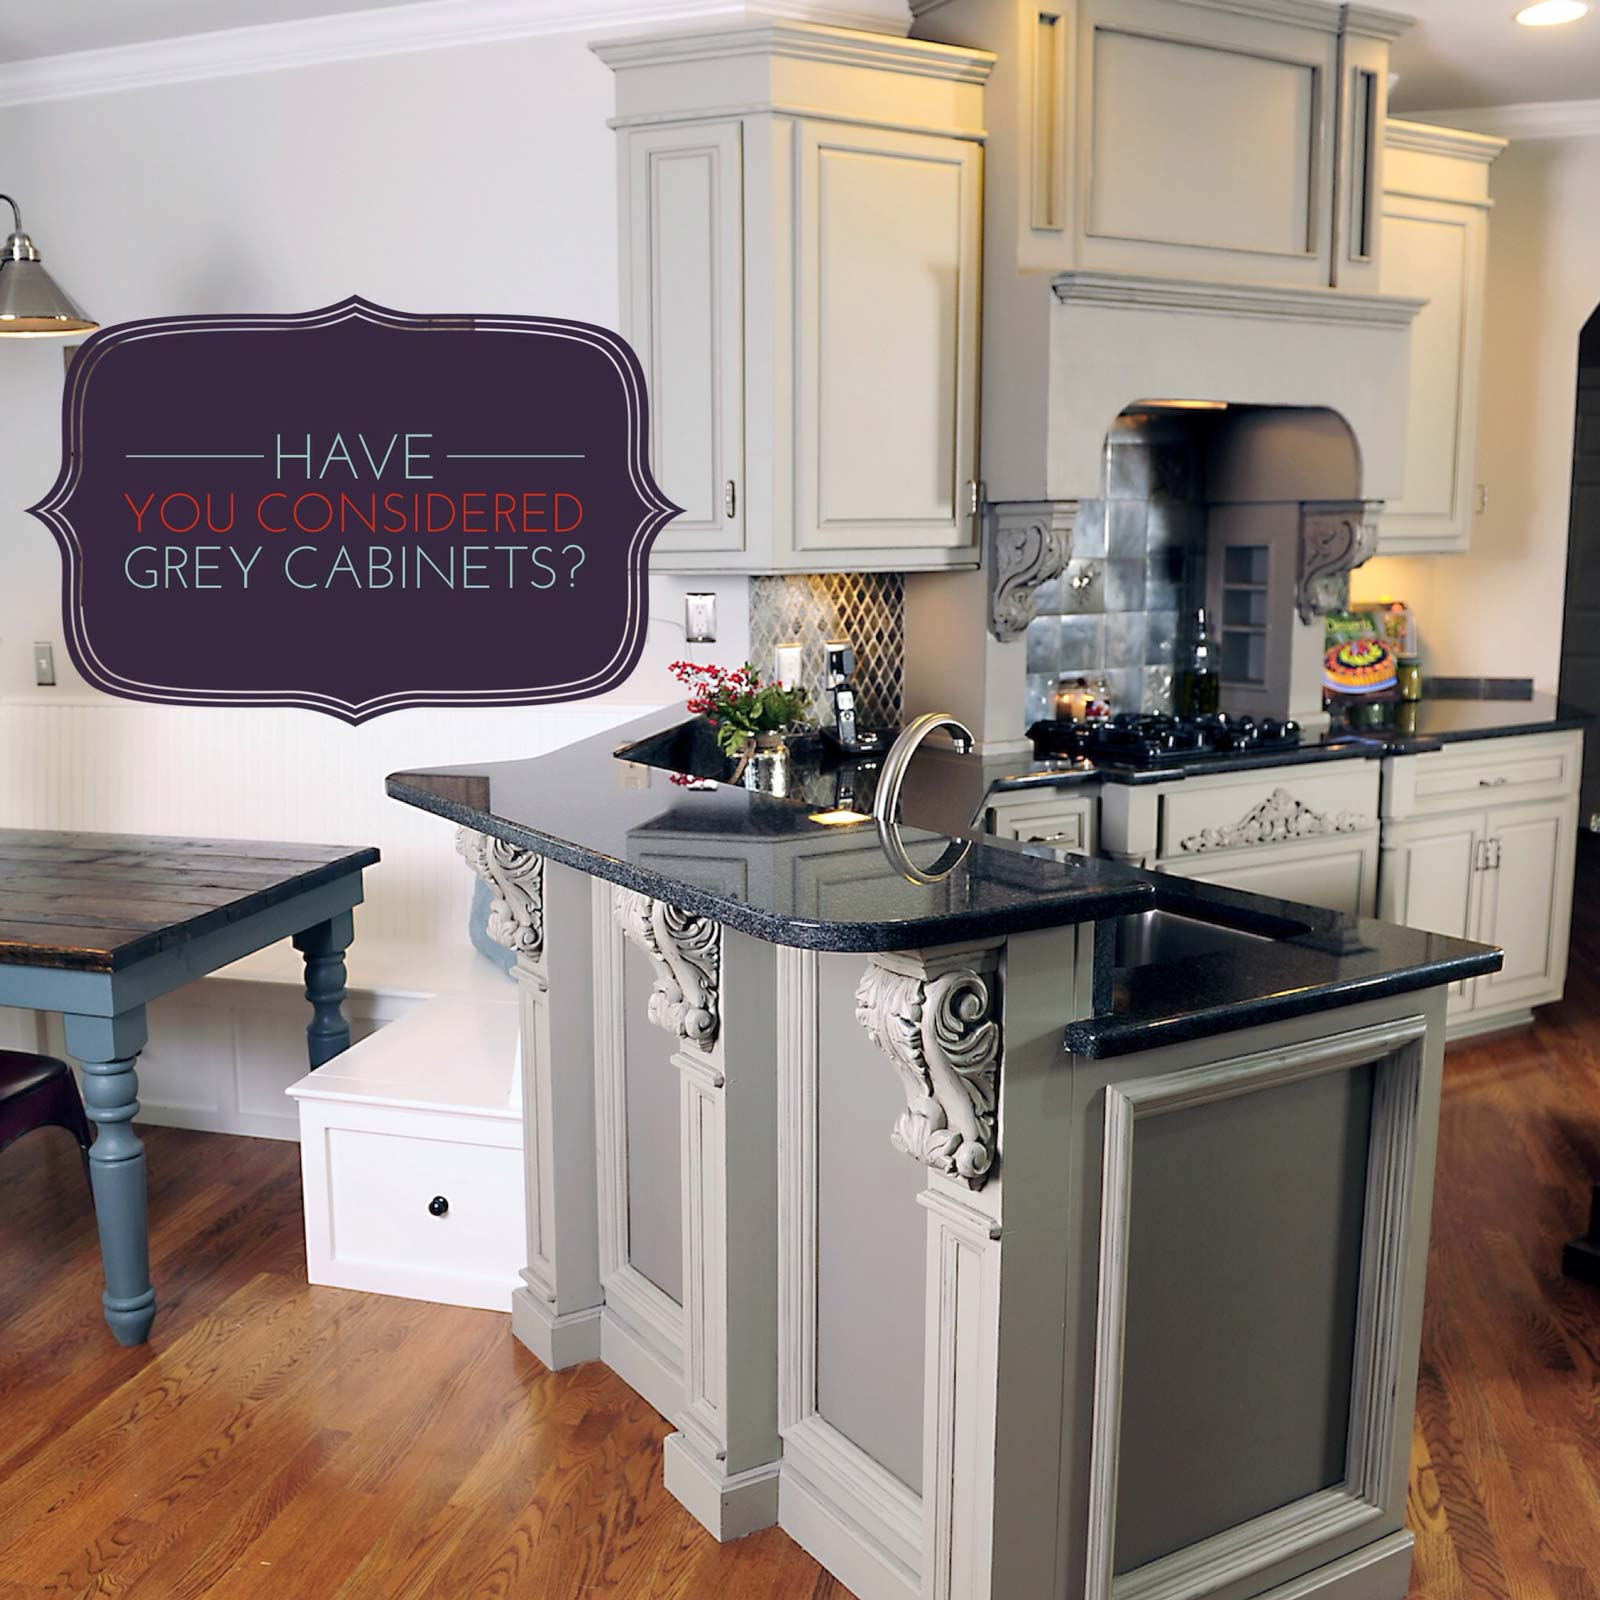 Have You Considered Grey Kitchen Cabinets - Grey kitchen cabinets with black appliances